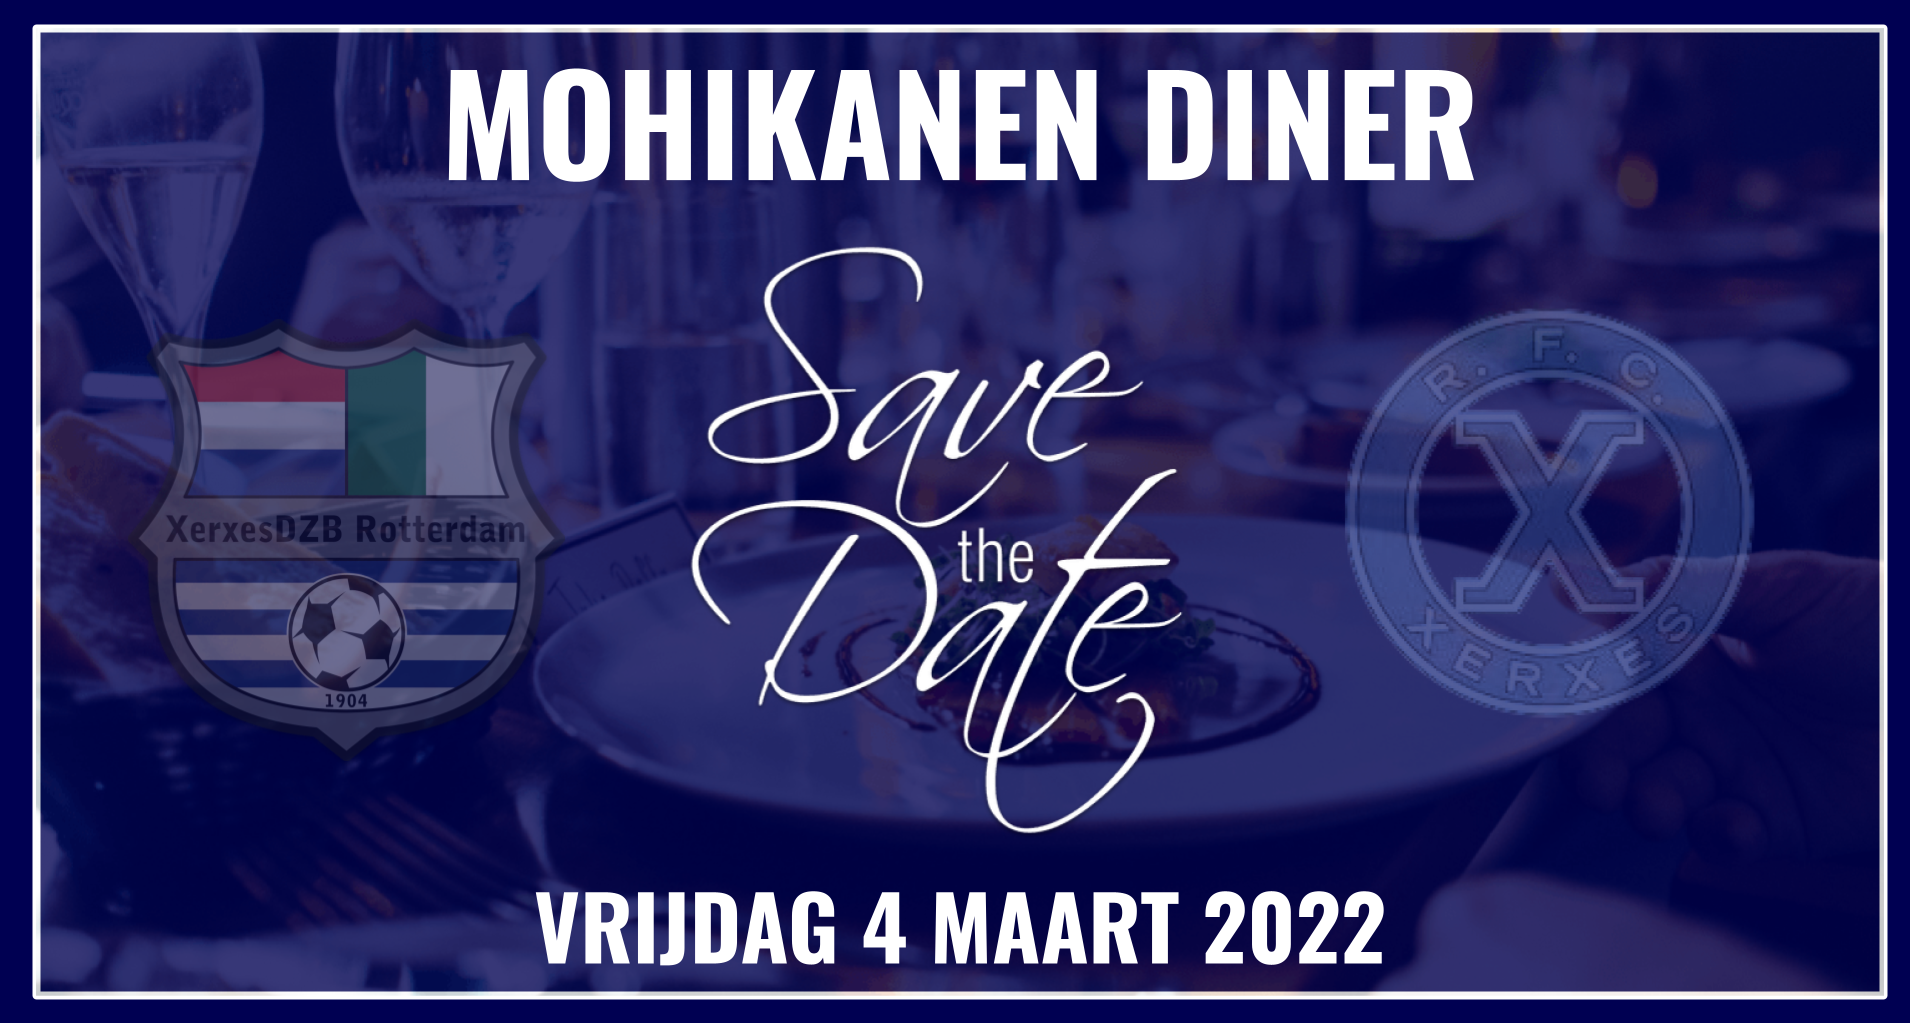 Save the Date! Mohikanen-diner 2022